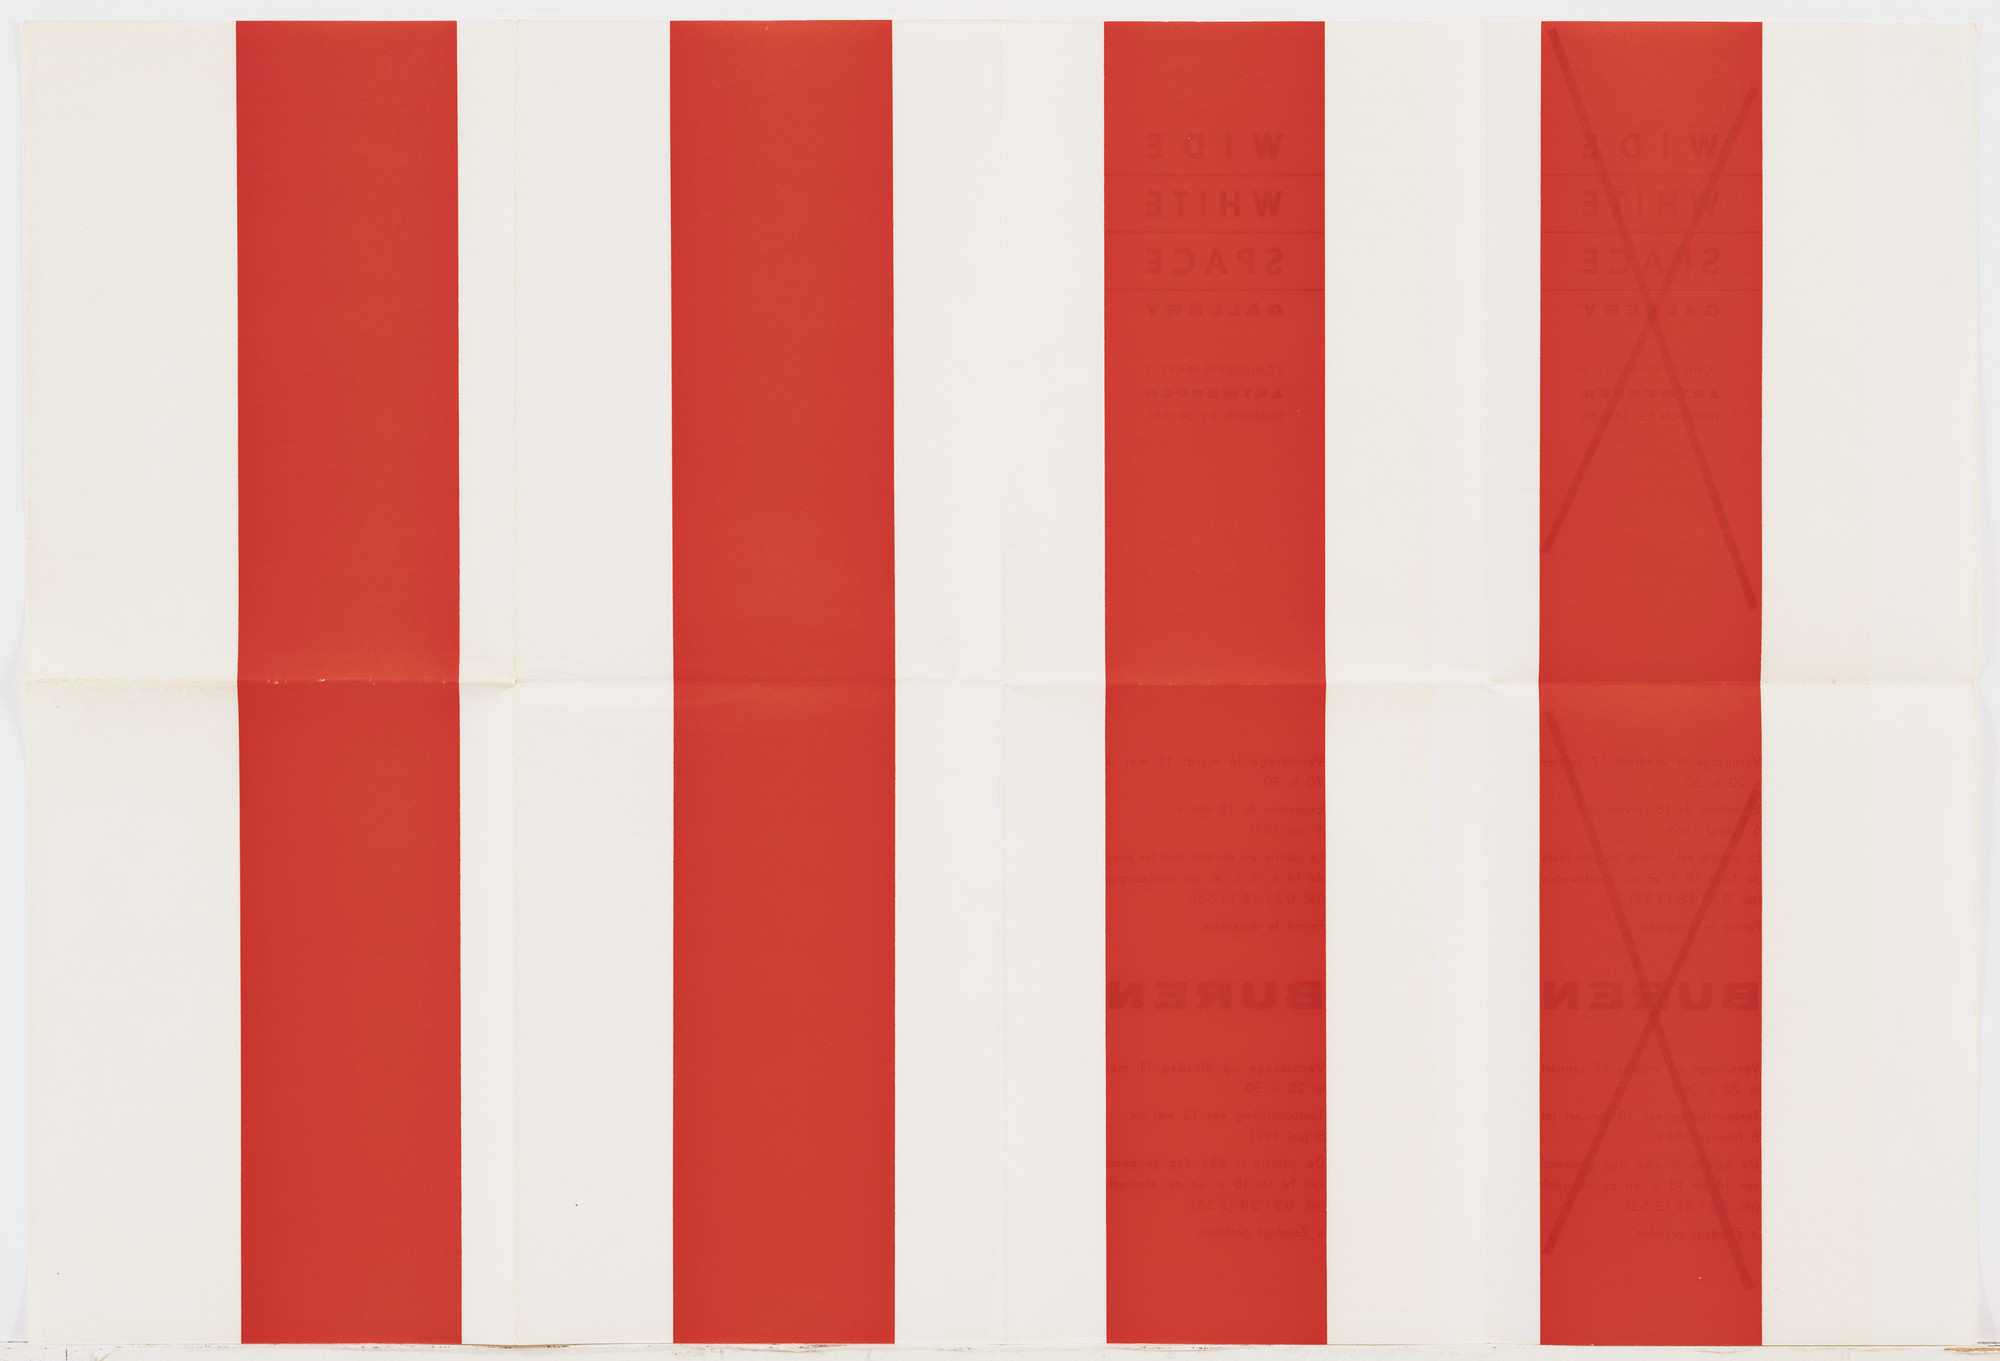 Daniel Buren. Untitled (Wide White Space Gallery Announcements). 1969–74